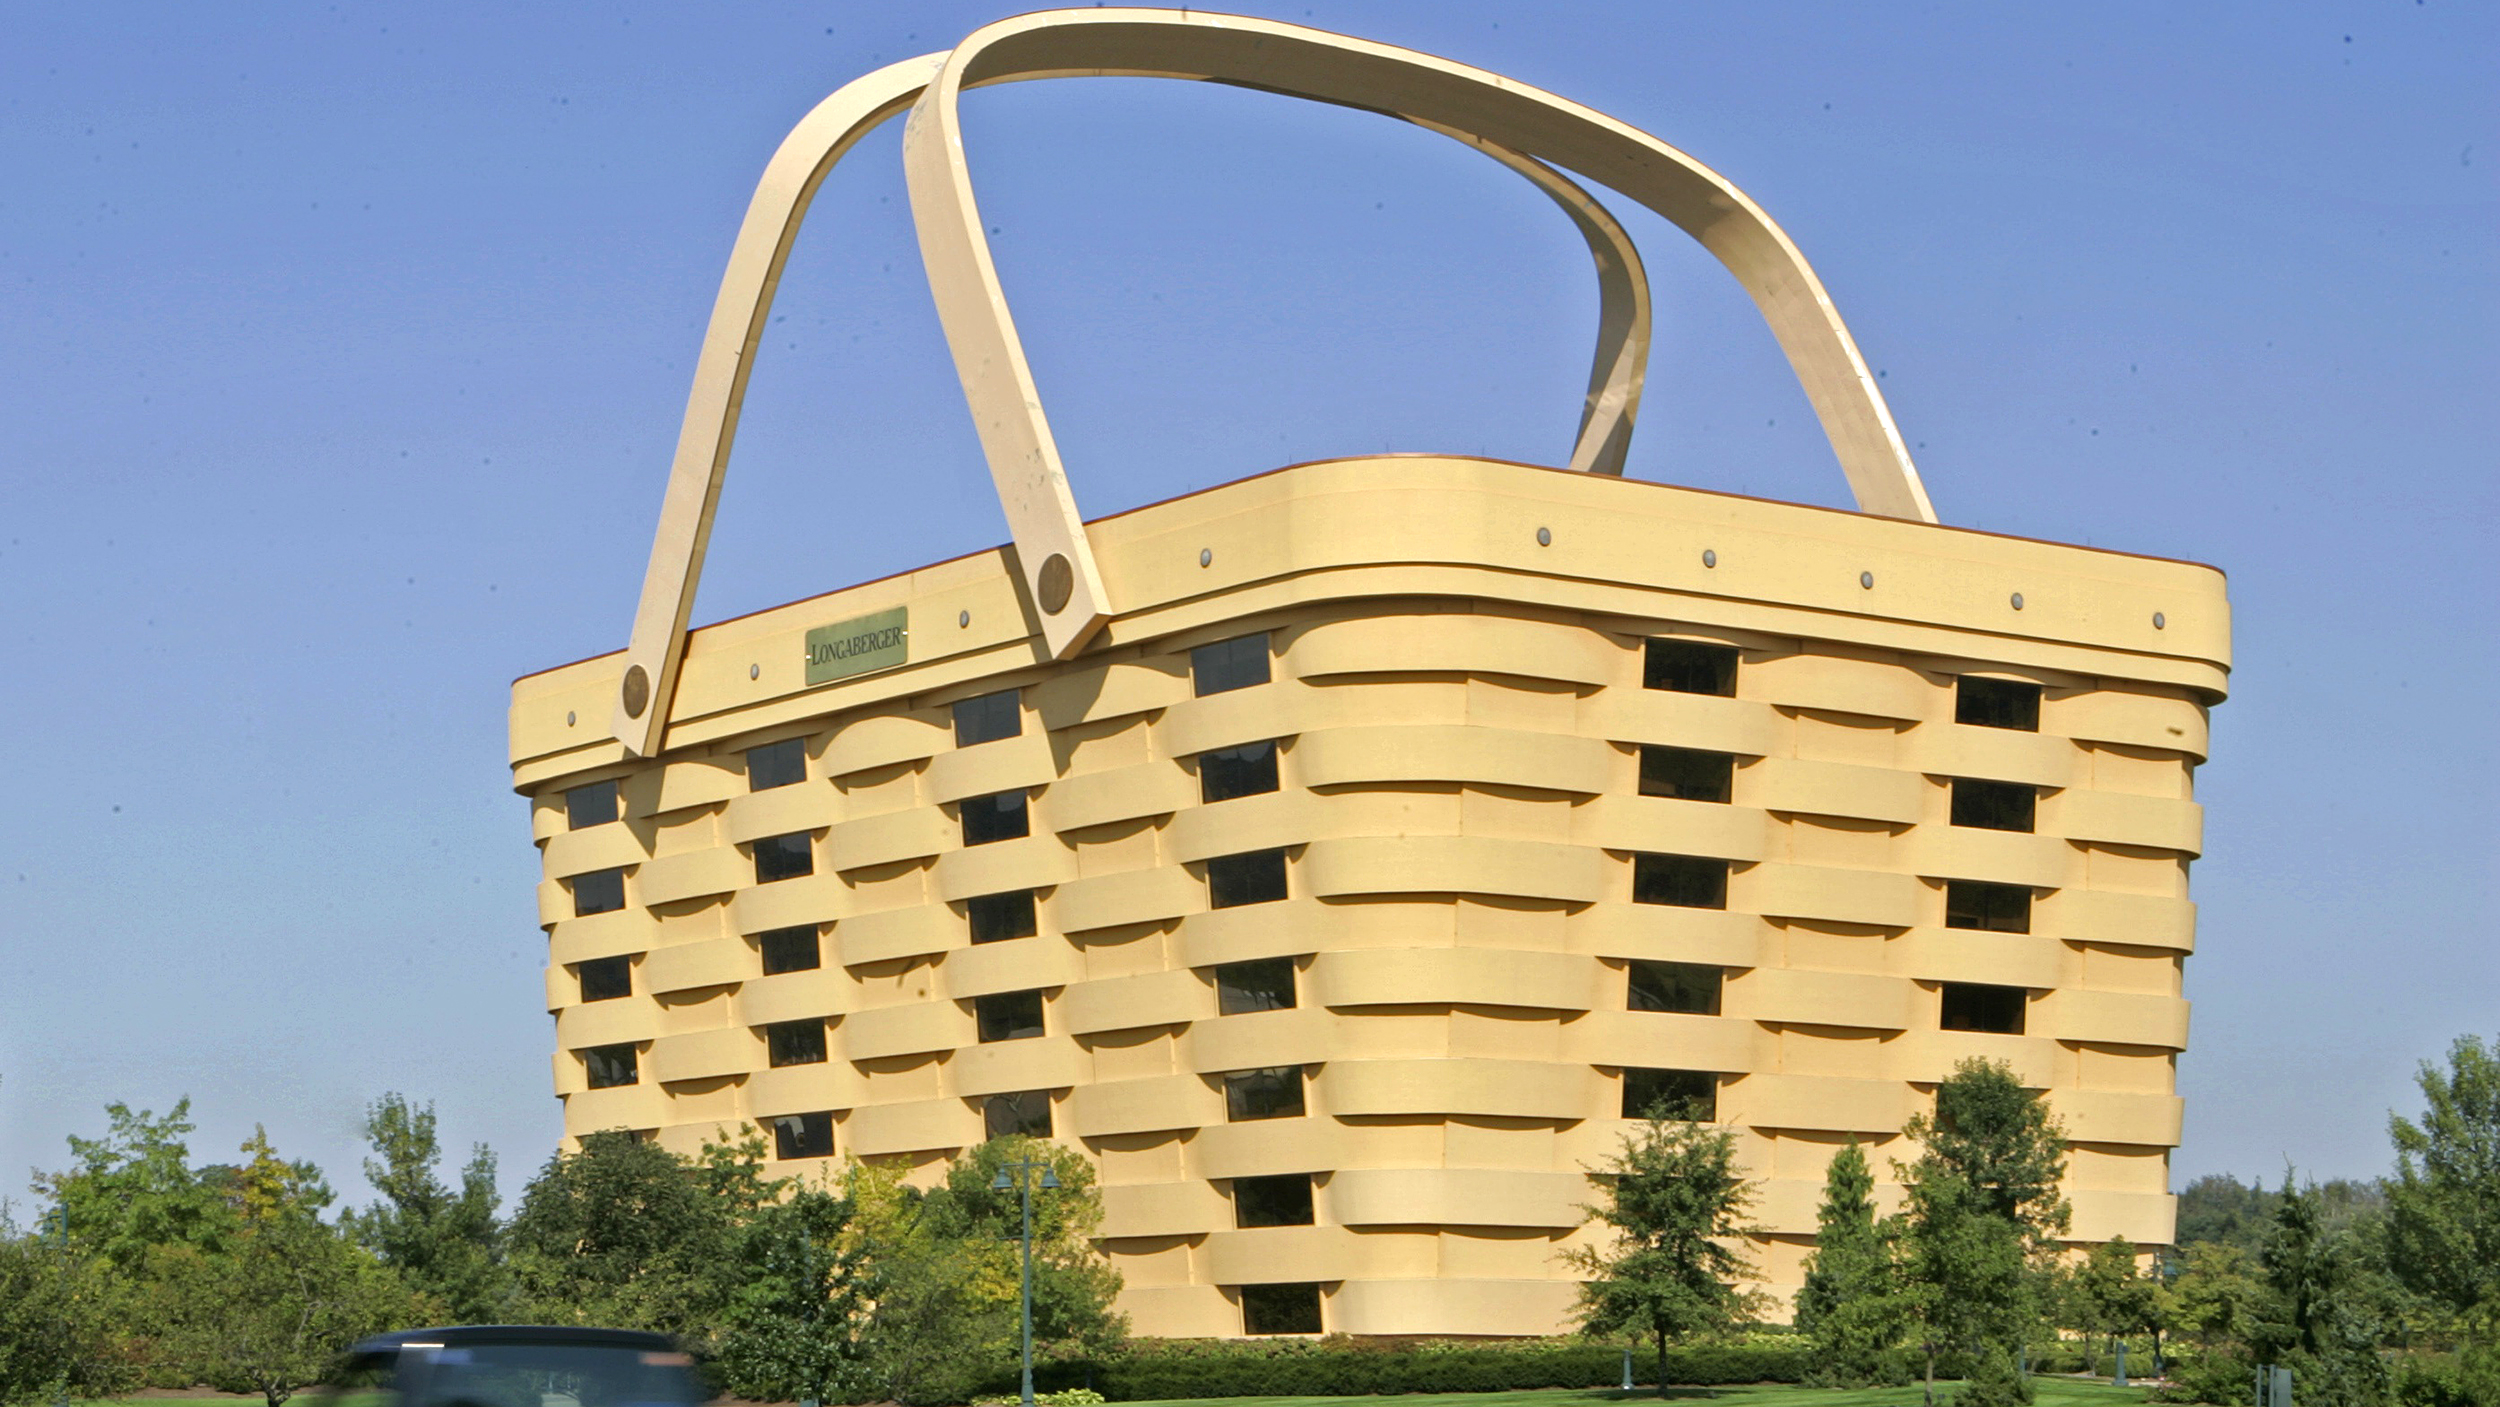 Fullsize Of Longaberger Baskets For Sale